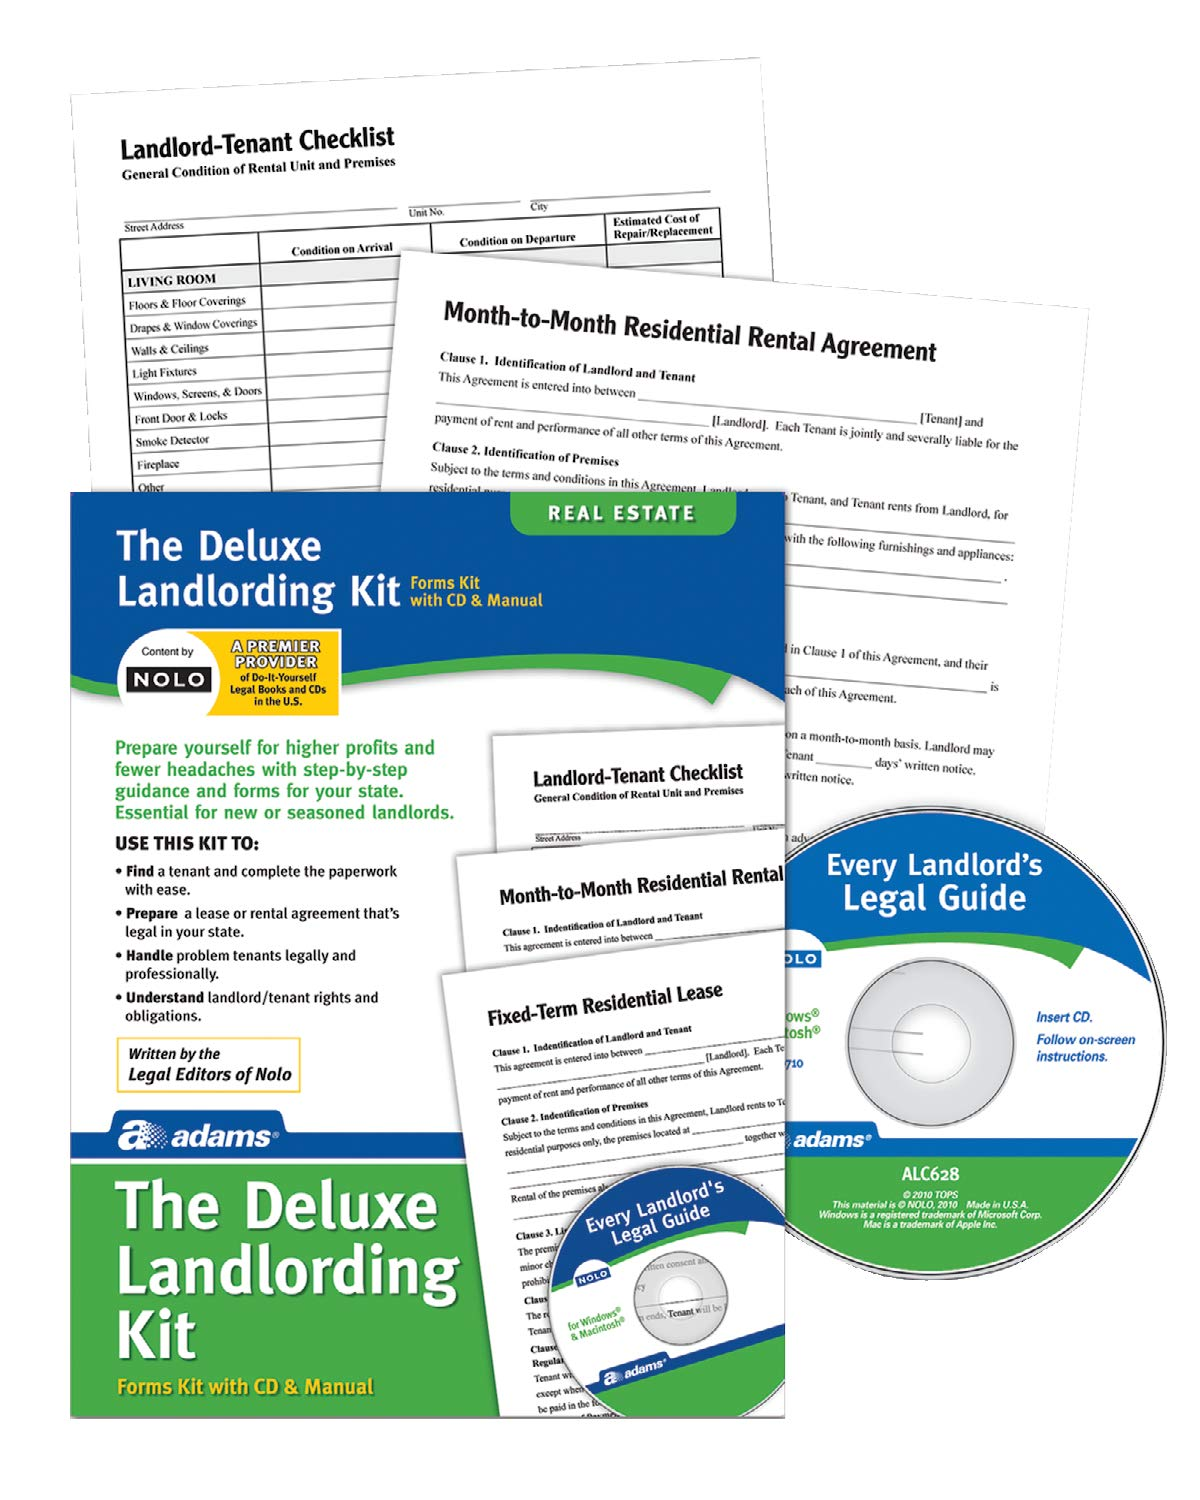 Adams Landlording Kit Forms And Instructions Includes Cd Pk213